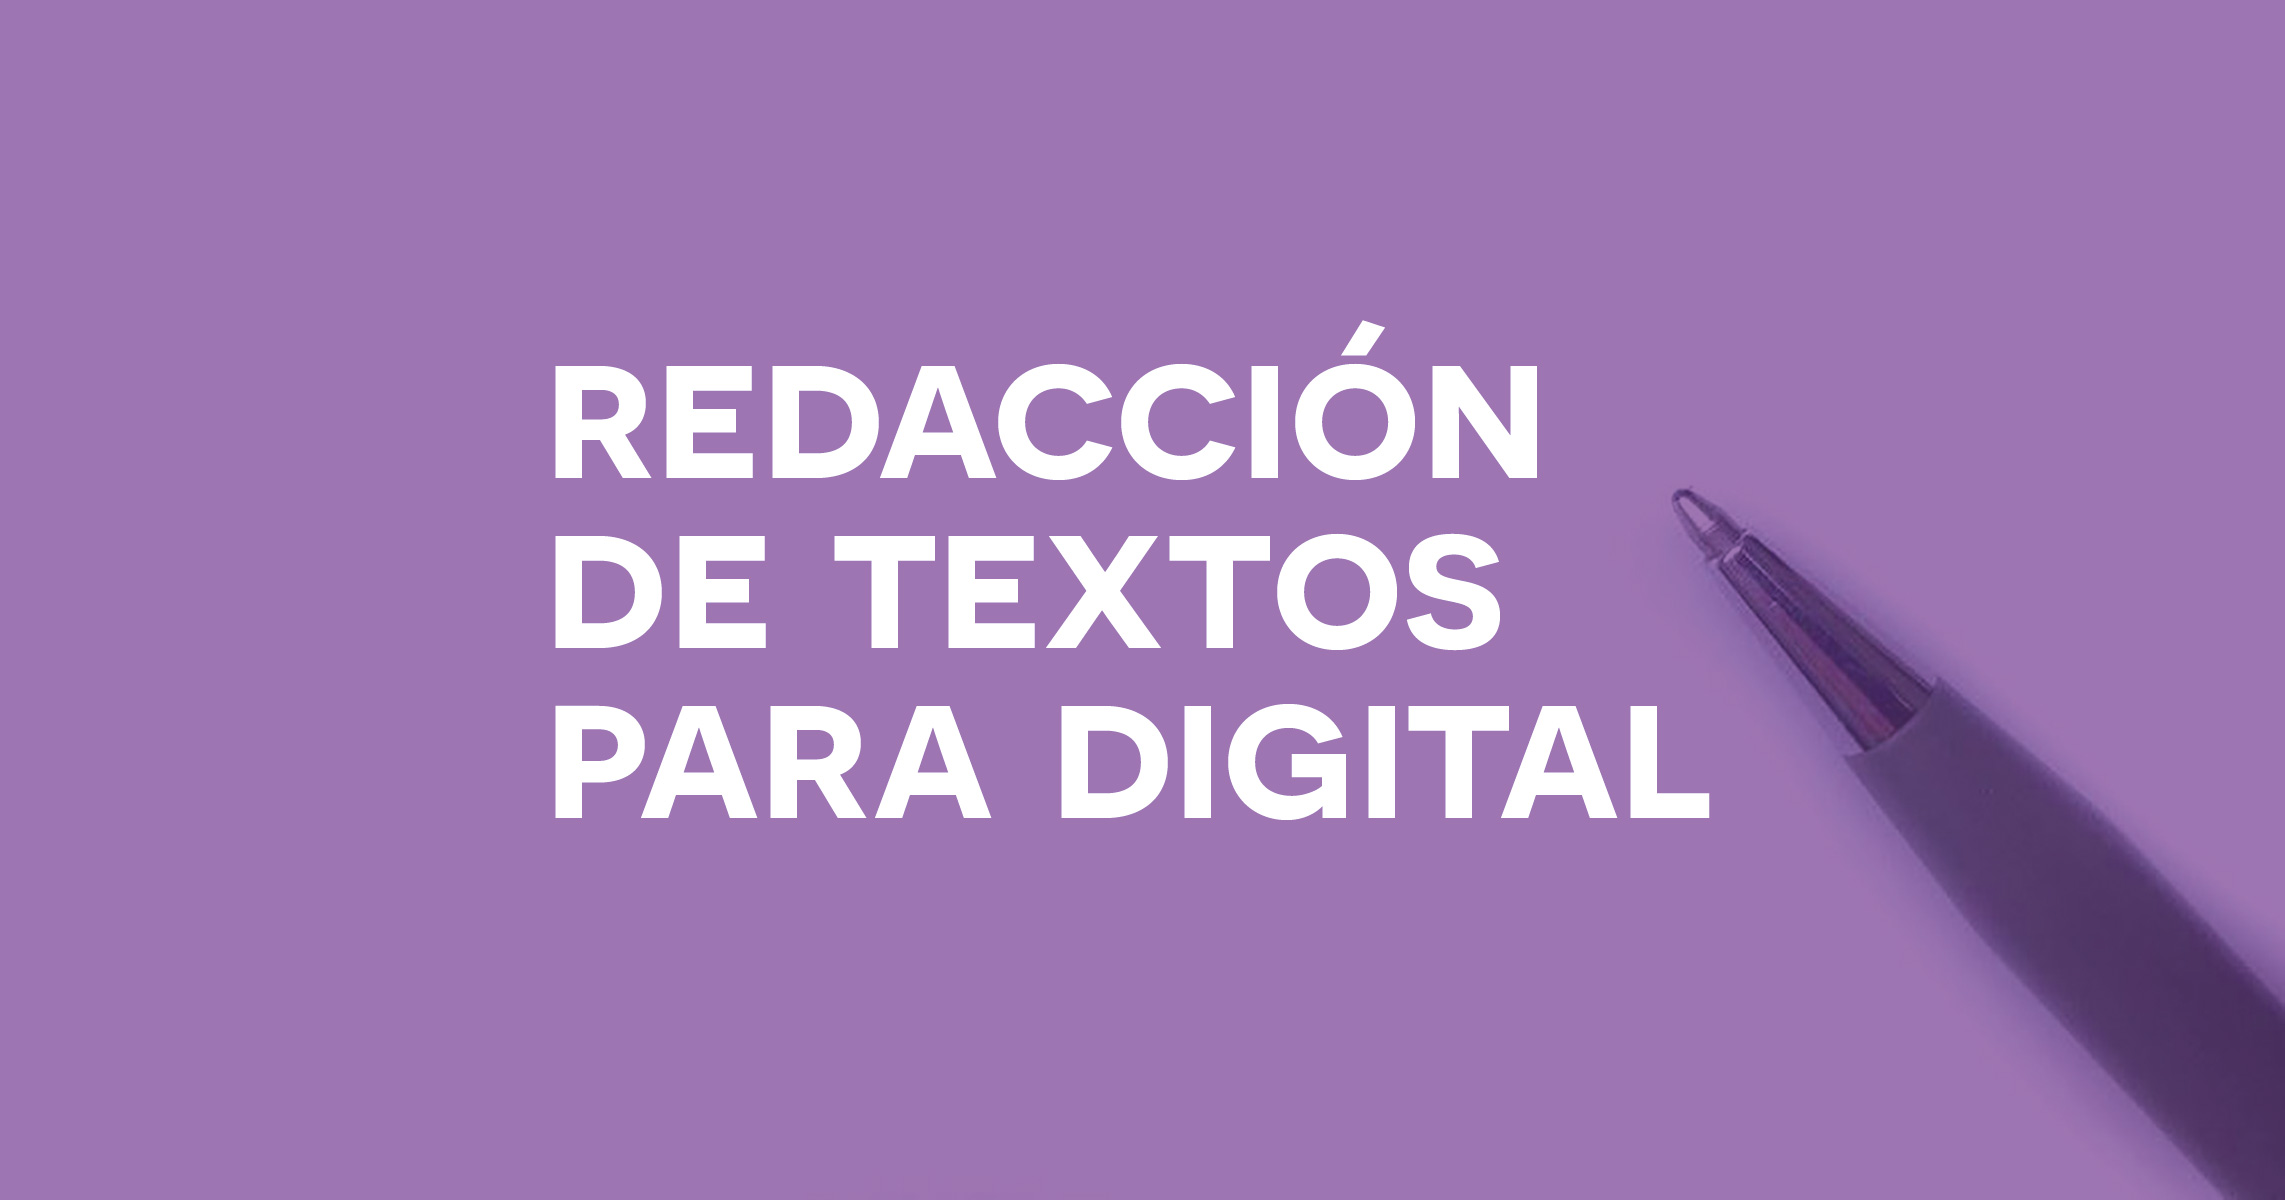 BP - redaccion de textos para digital